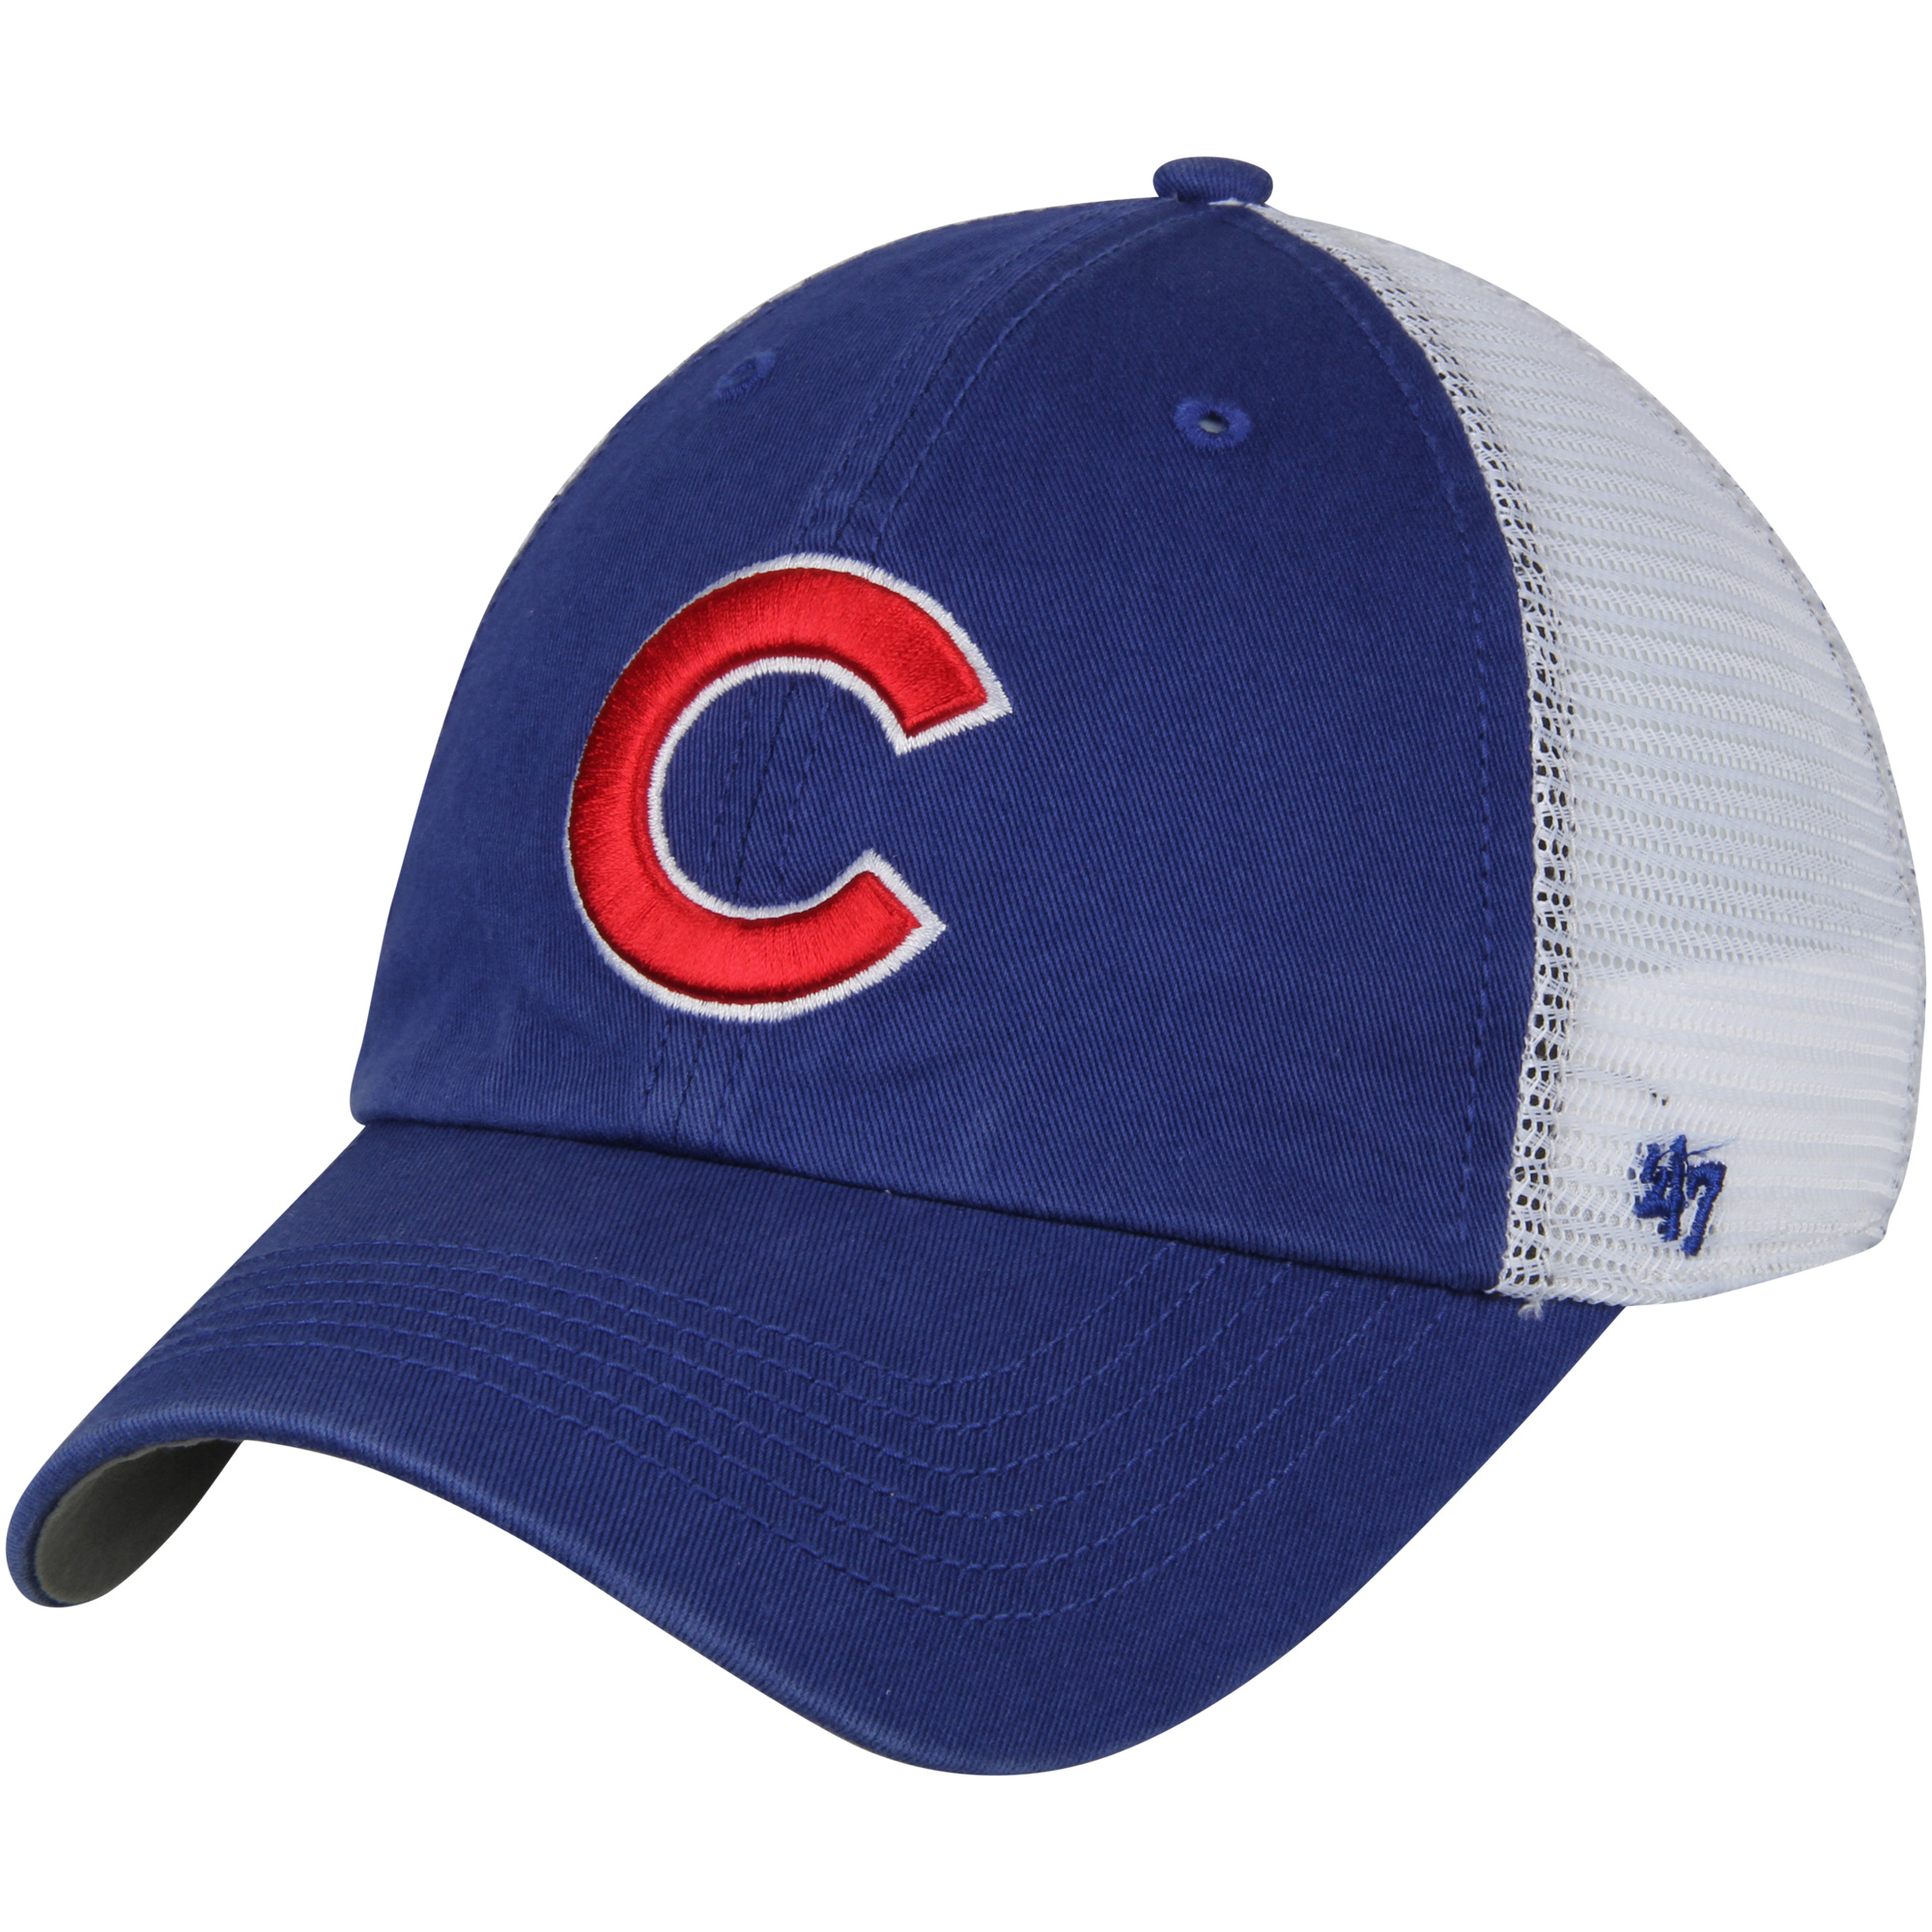 Chicago Cubs '47 Blue Hill Closer Flex Hat - Royal/White - OSFM